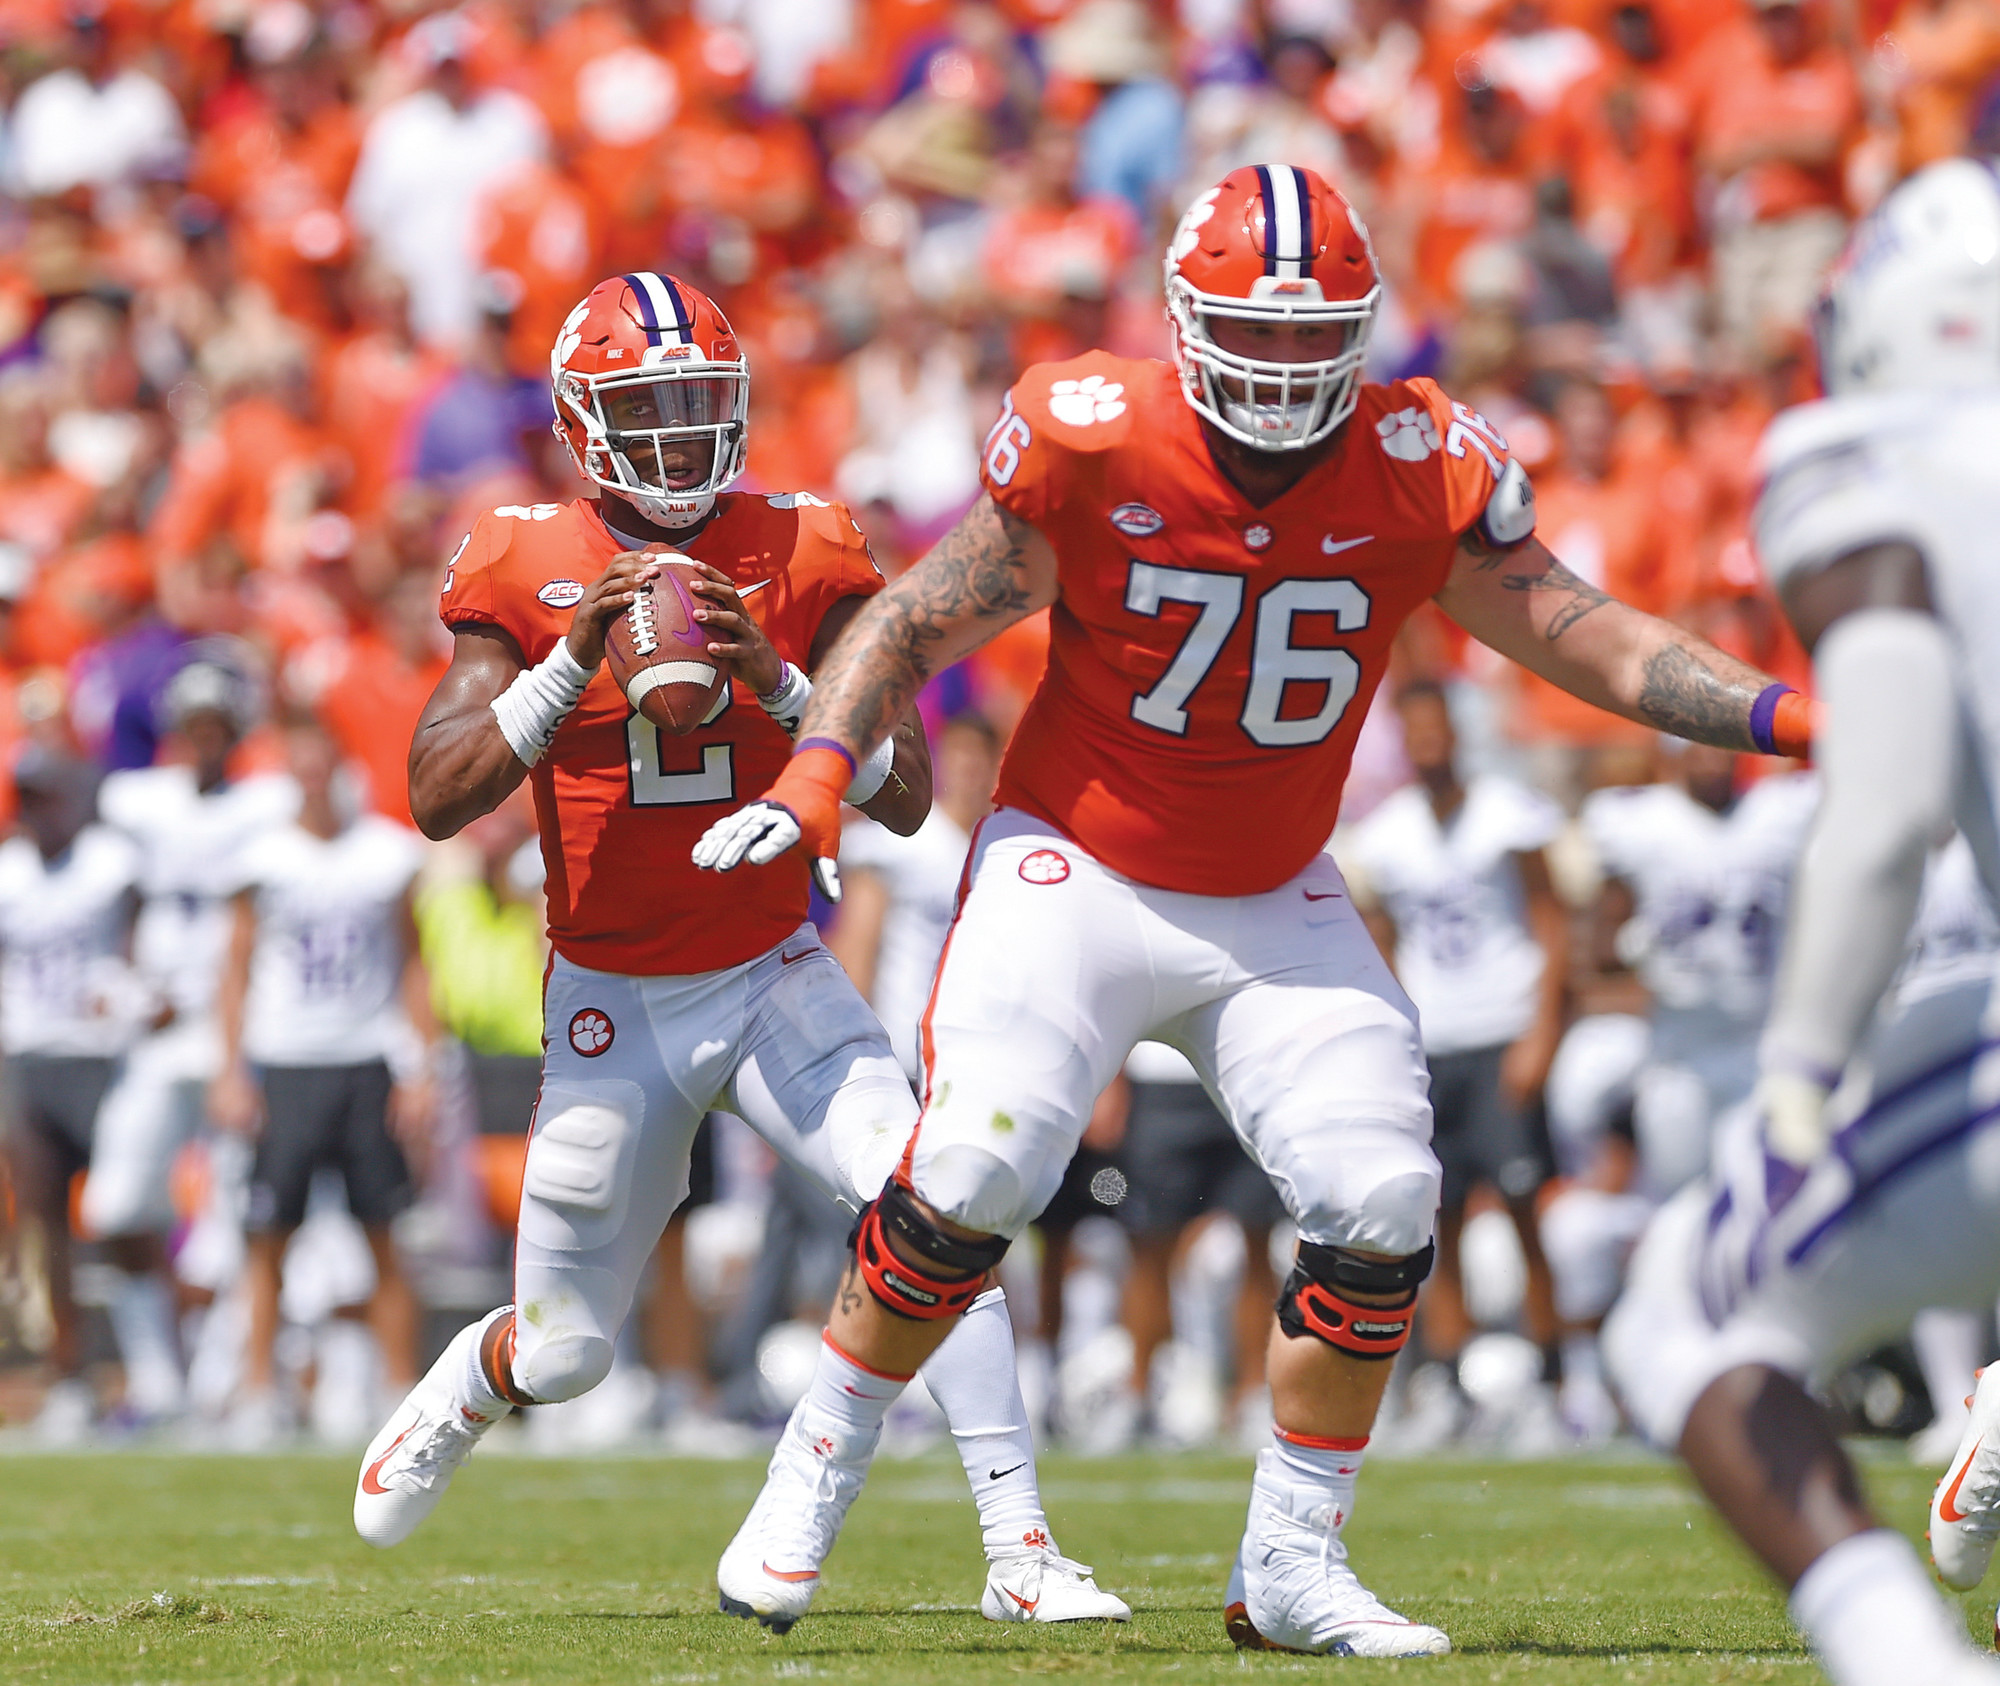 Clemson quarterback Kelly Bryant drops back to pass with blocking help from Sean Pollard (76) during the first half of the Tigers' 48-7 victory over Furman on Saturday in the season opener for both teams.